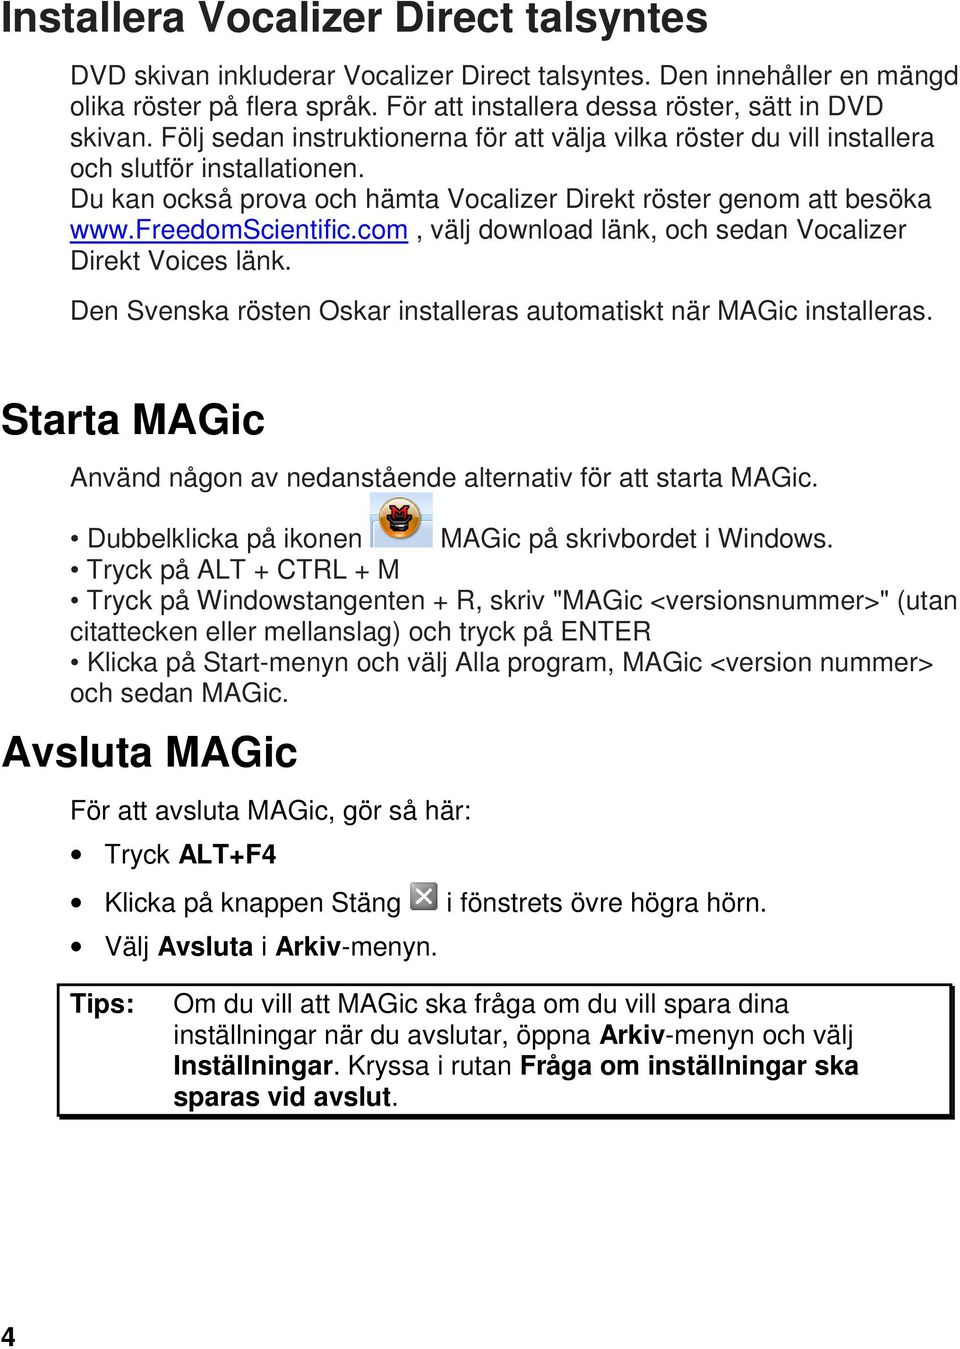 com, välj download länk, och sedan Vocalizer Direkt Voices länk. Den Svenska rösten Oskar installeras automatiskt när MAGic installeras.